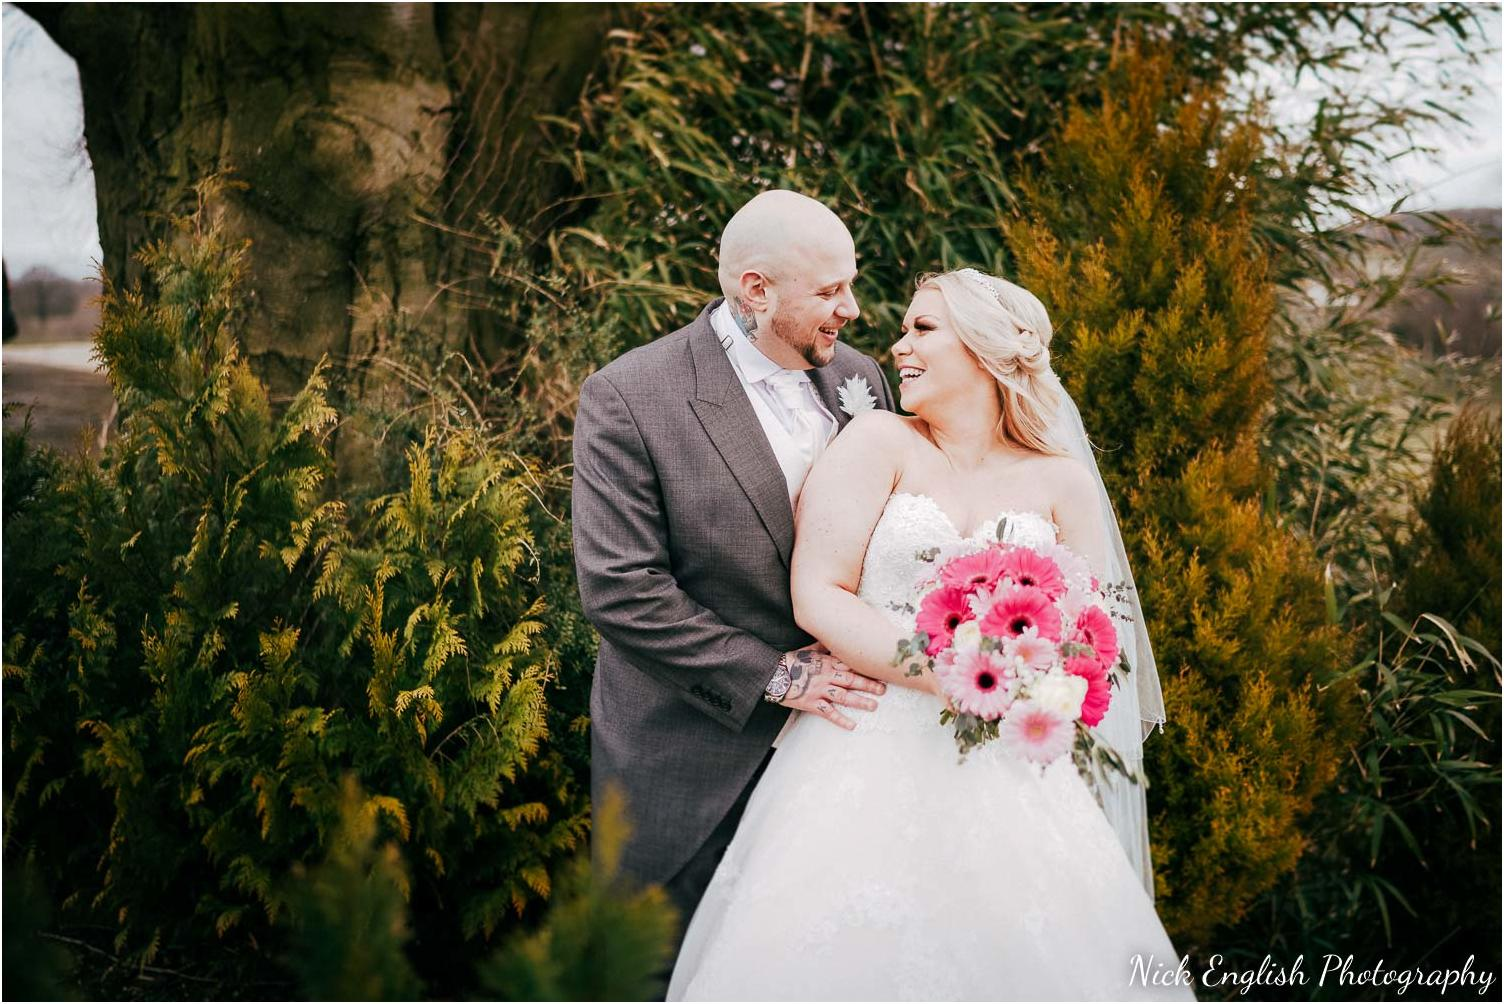 Stirk_House_Wedding_Photographer-101.jpg